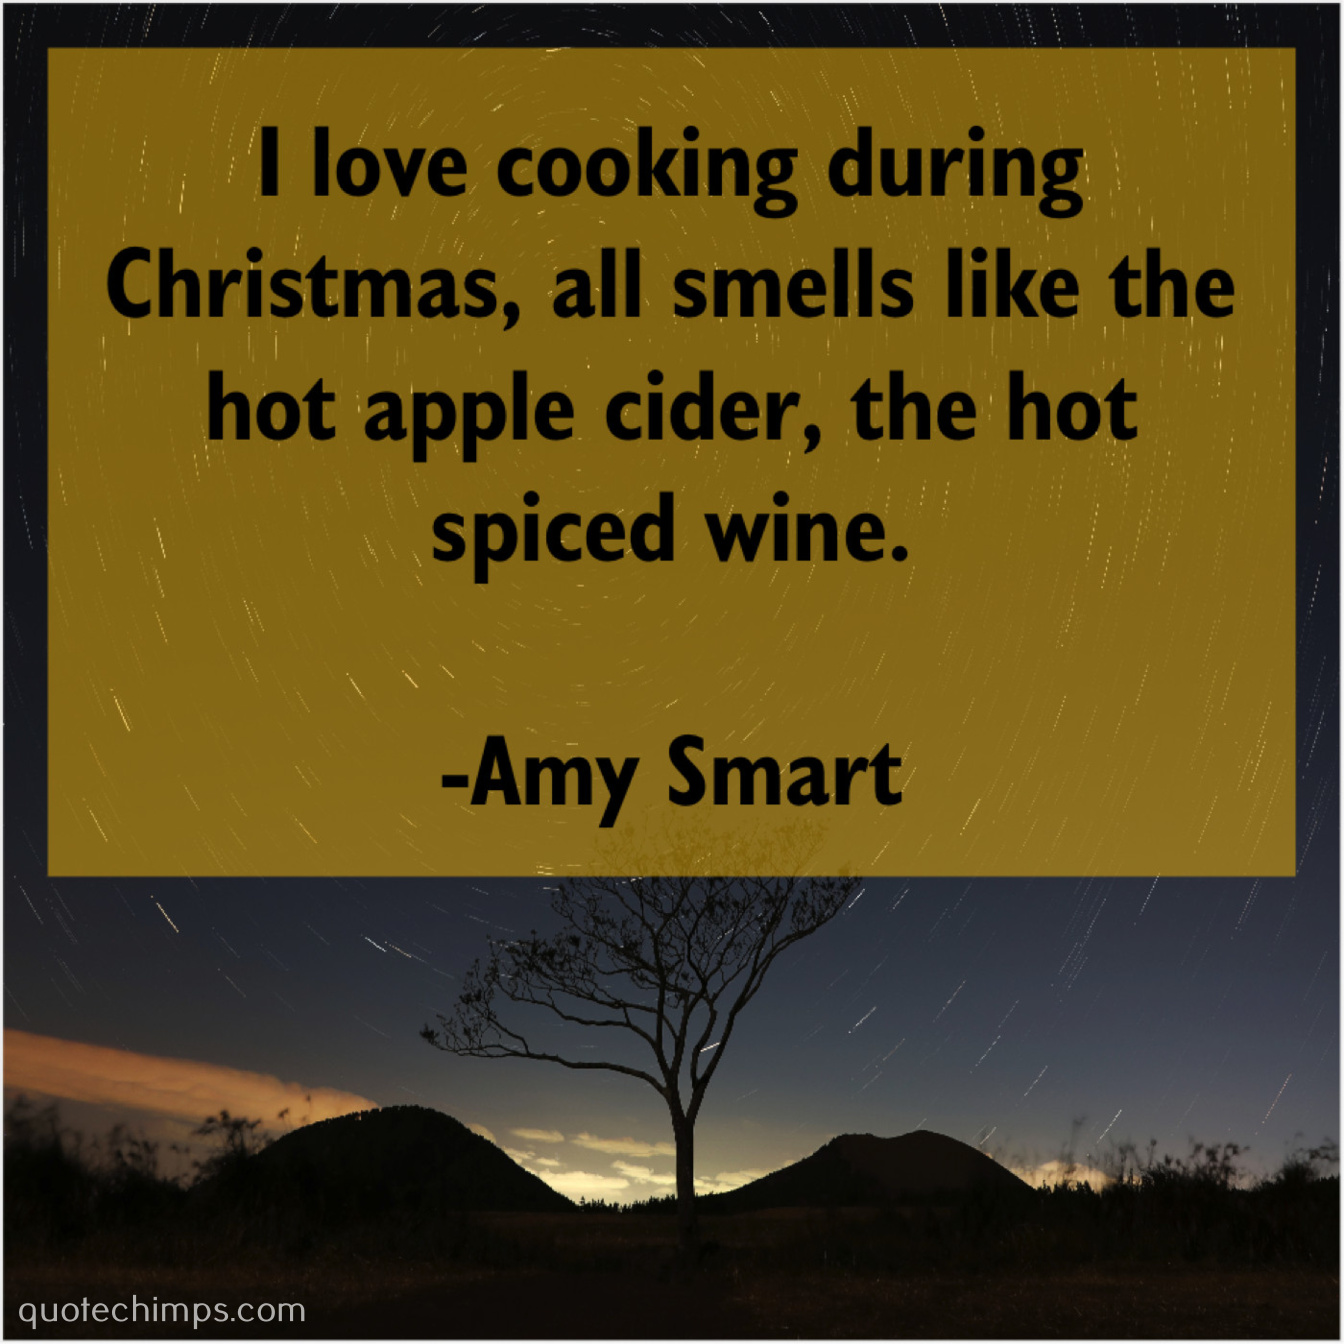 Amy Smart – I love cooking during Christmas… |